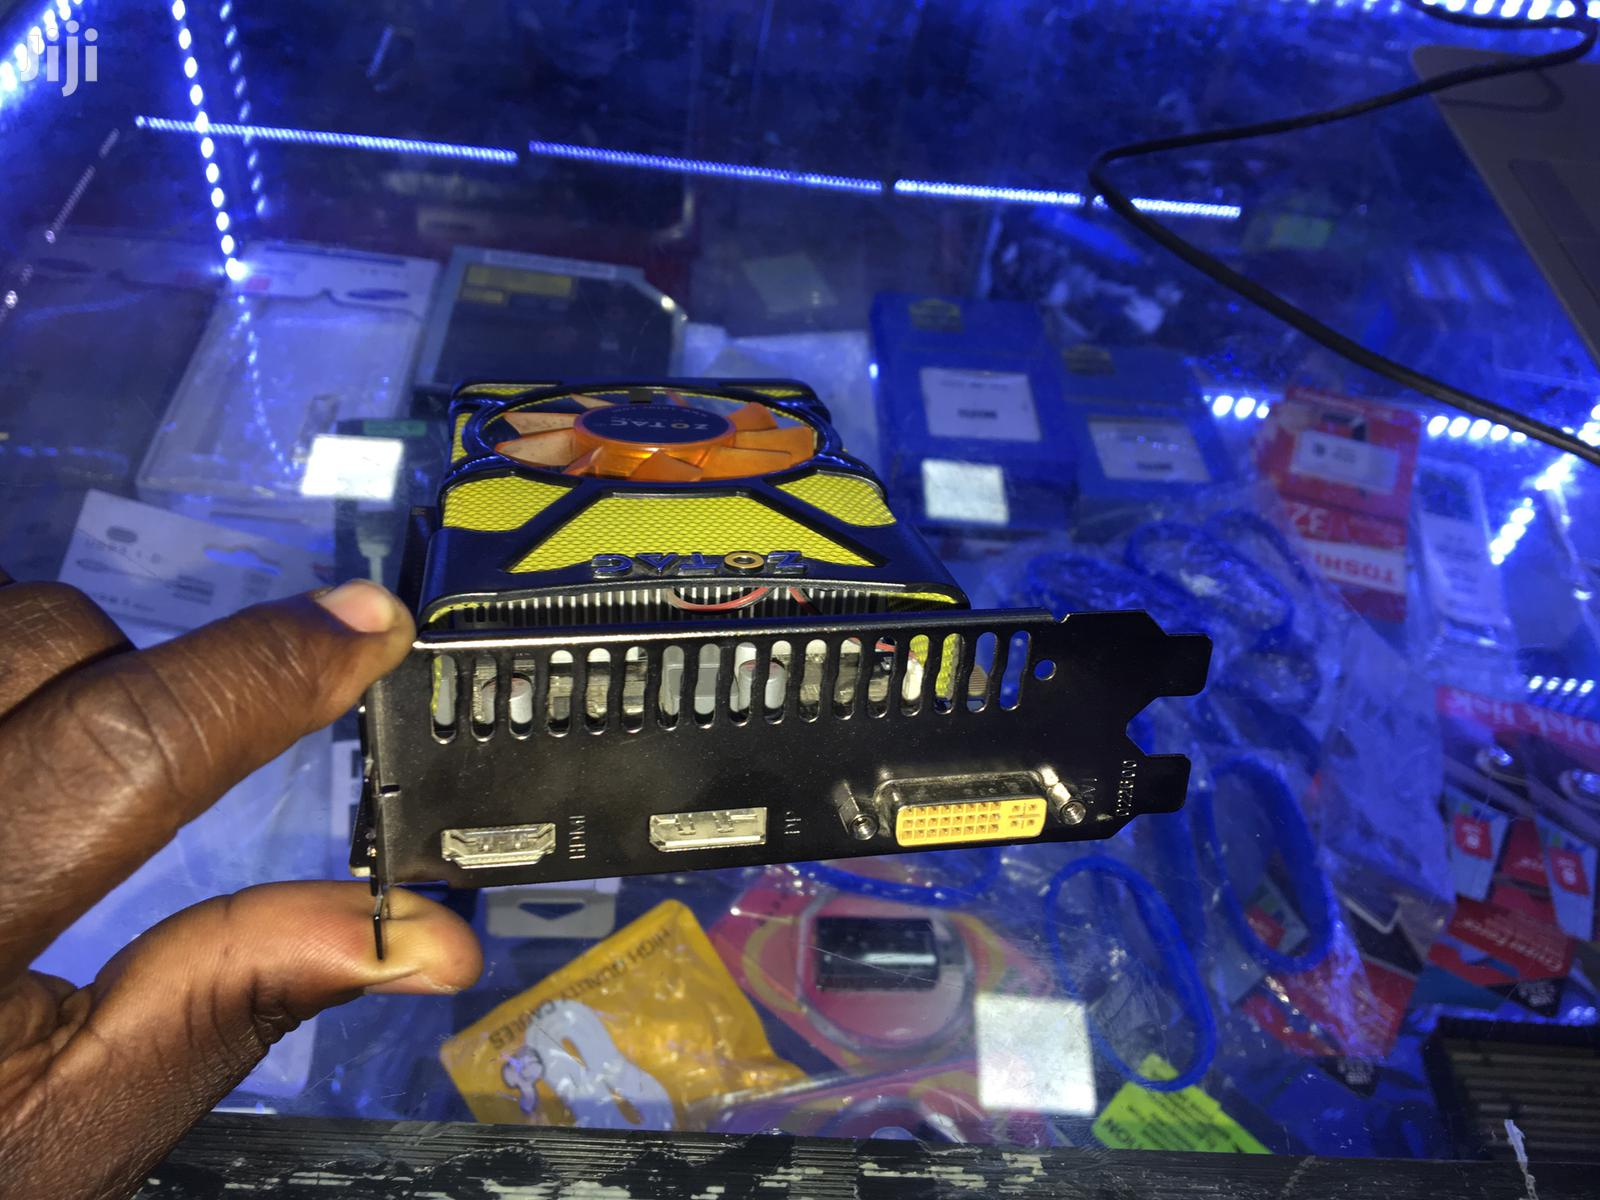 NIVIDIA Zotac Gt 440 Of 2gb Ddr3 Basic Graphics Card | Computer Hardware for sale in Kampala, Central Region, Uganda